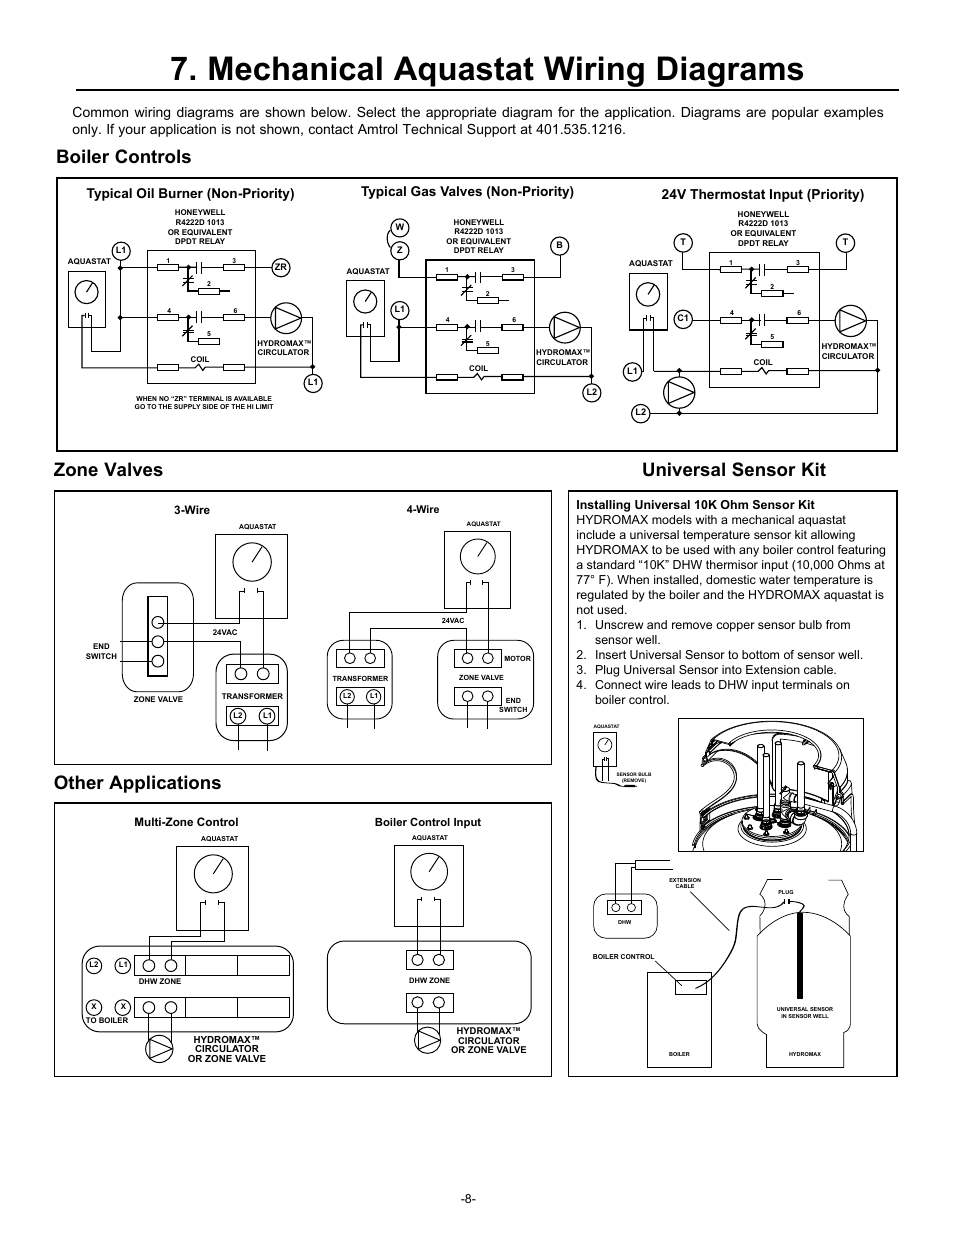 amtrol hydromax hm 41l page8 aquastat wiring diagram & aquastat wiring diagram honeywell s plan oil failure control wiring diagram at n-0.co